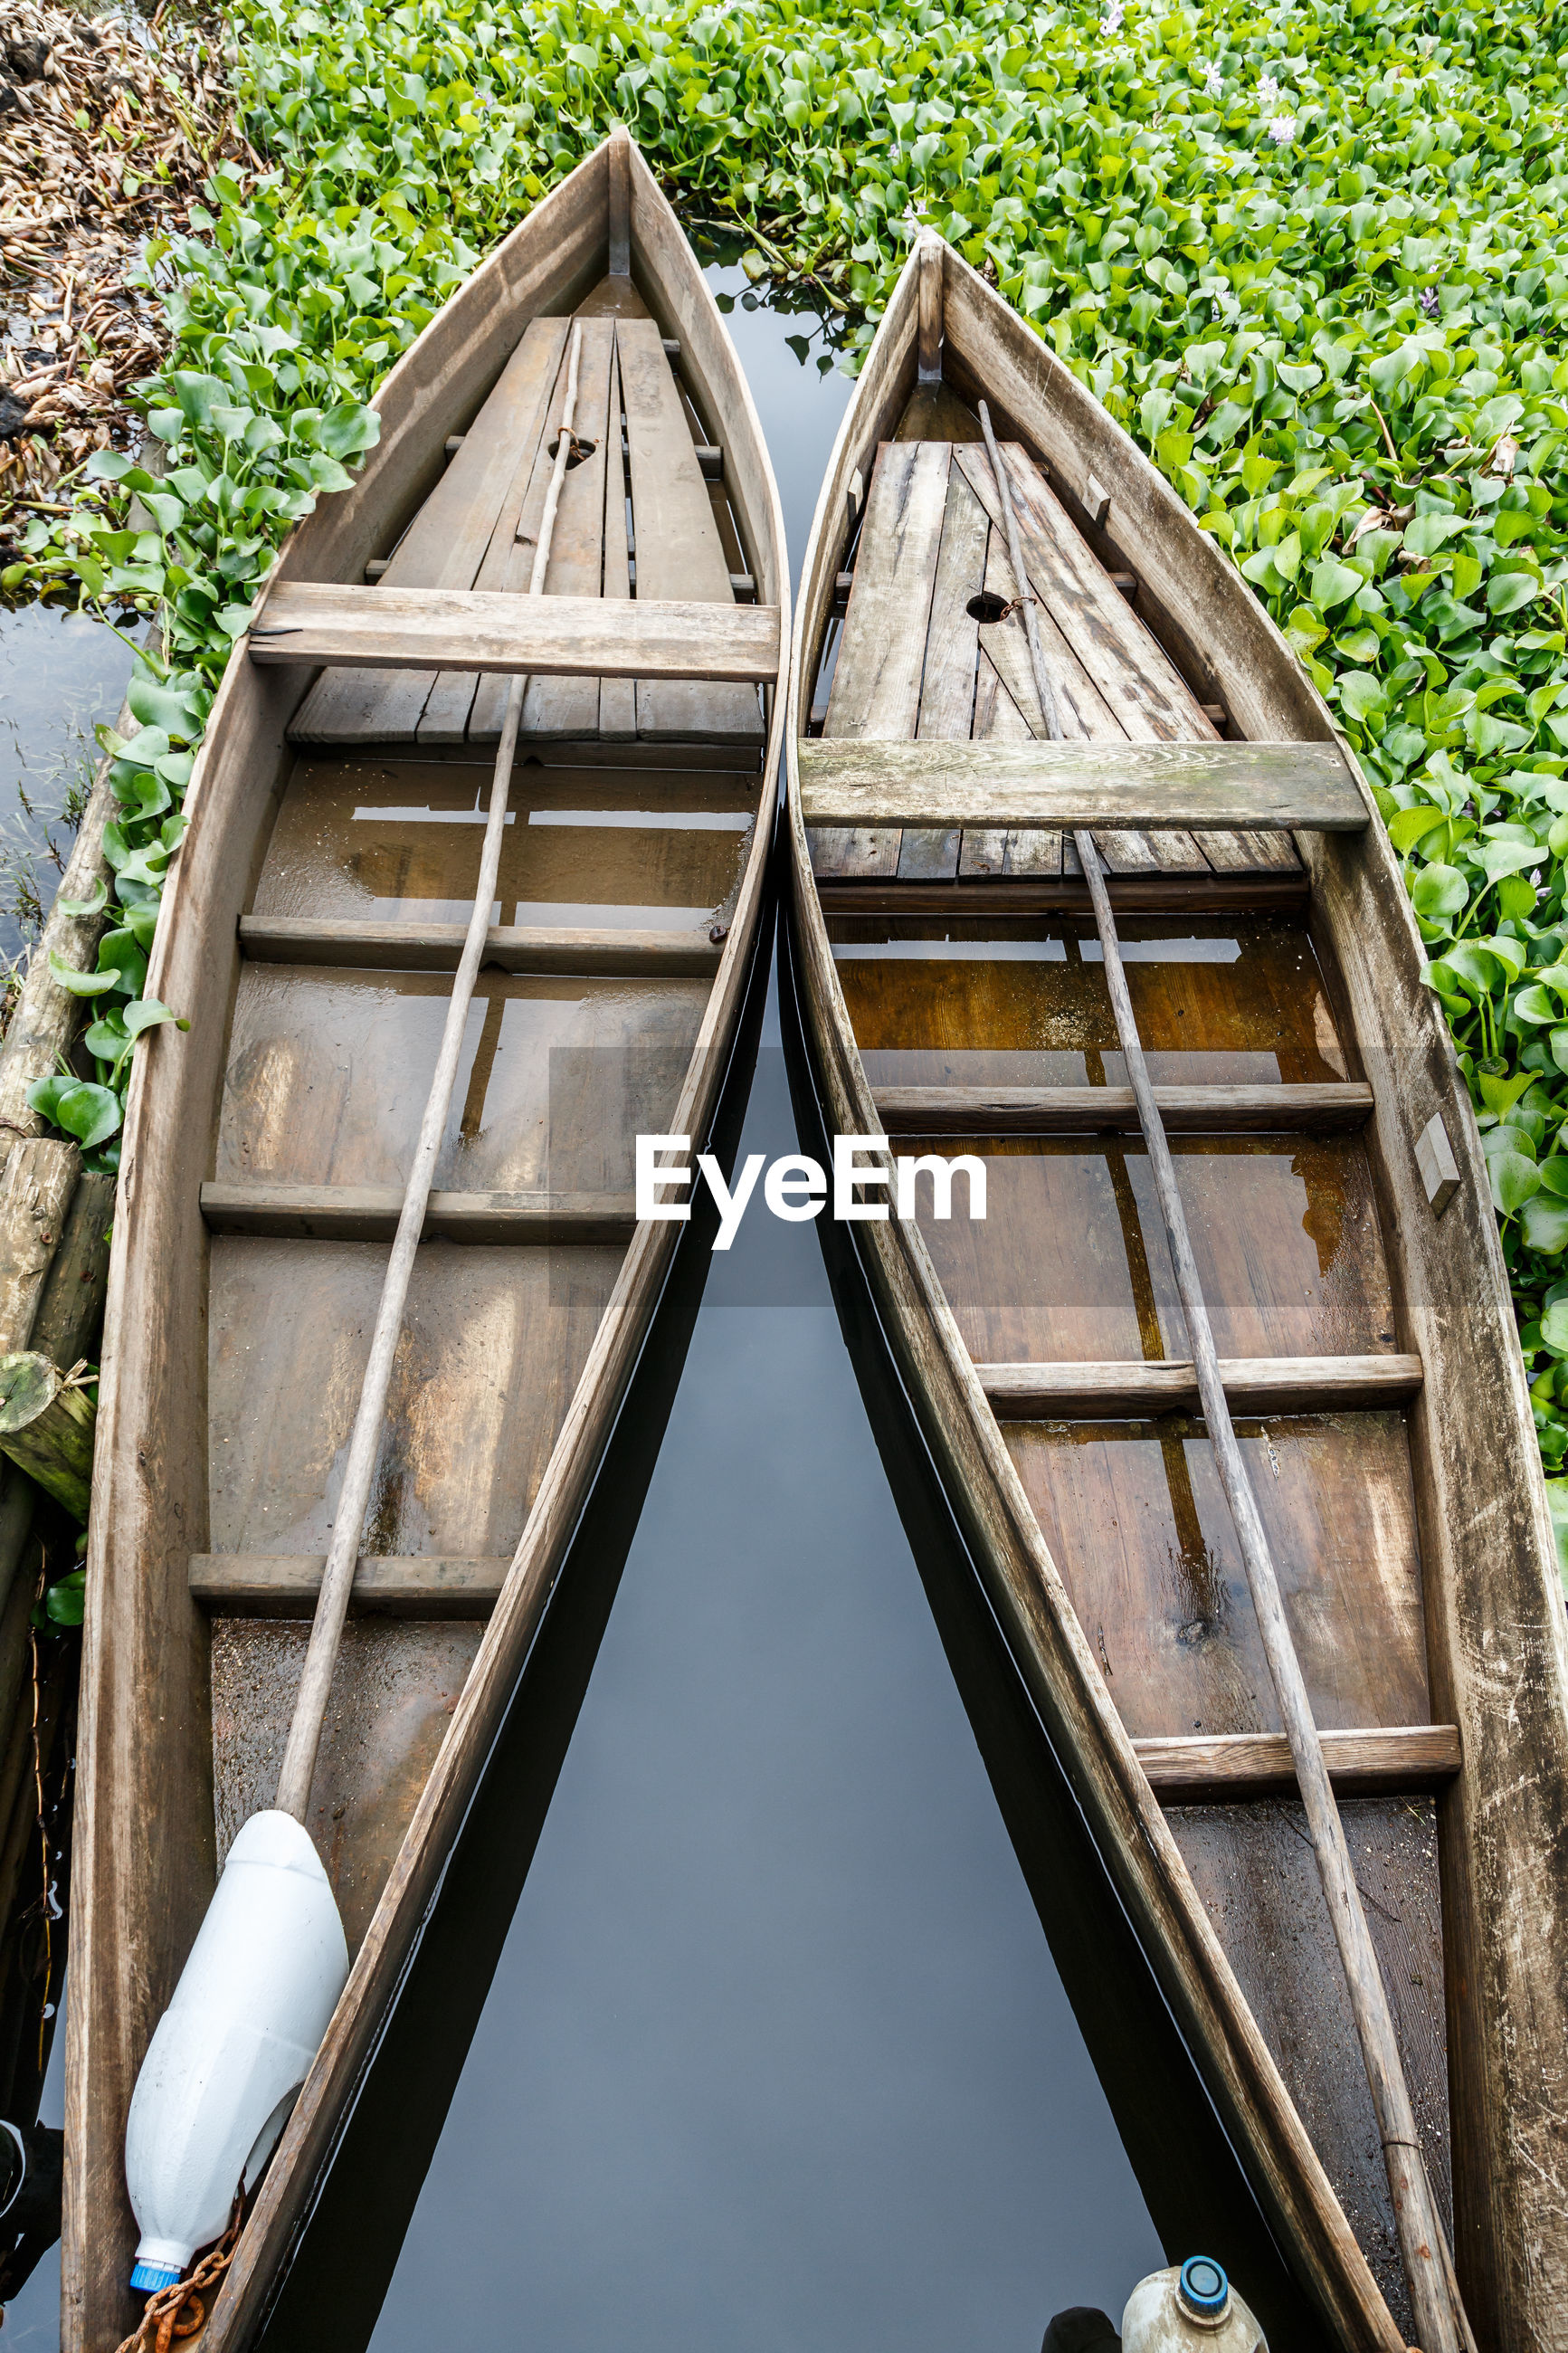 High angle view of boats against plants